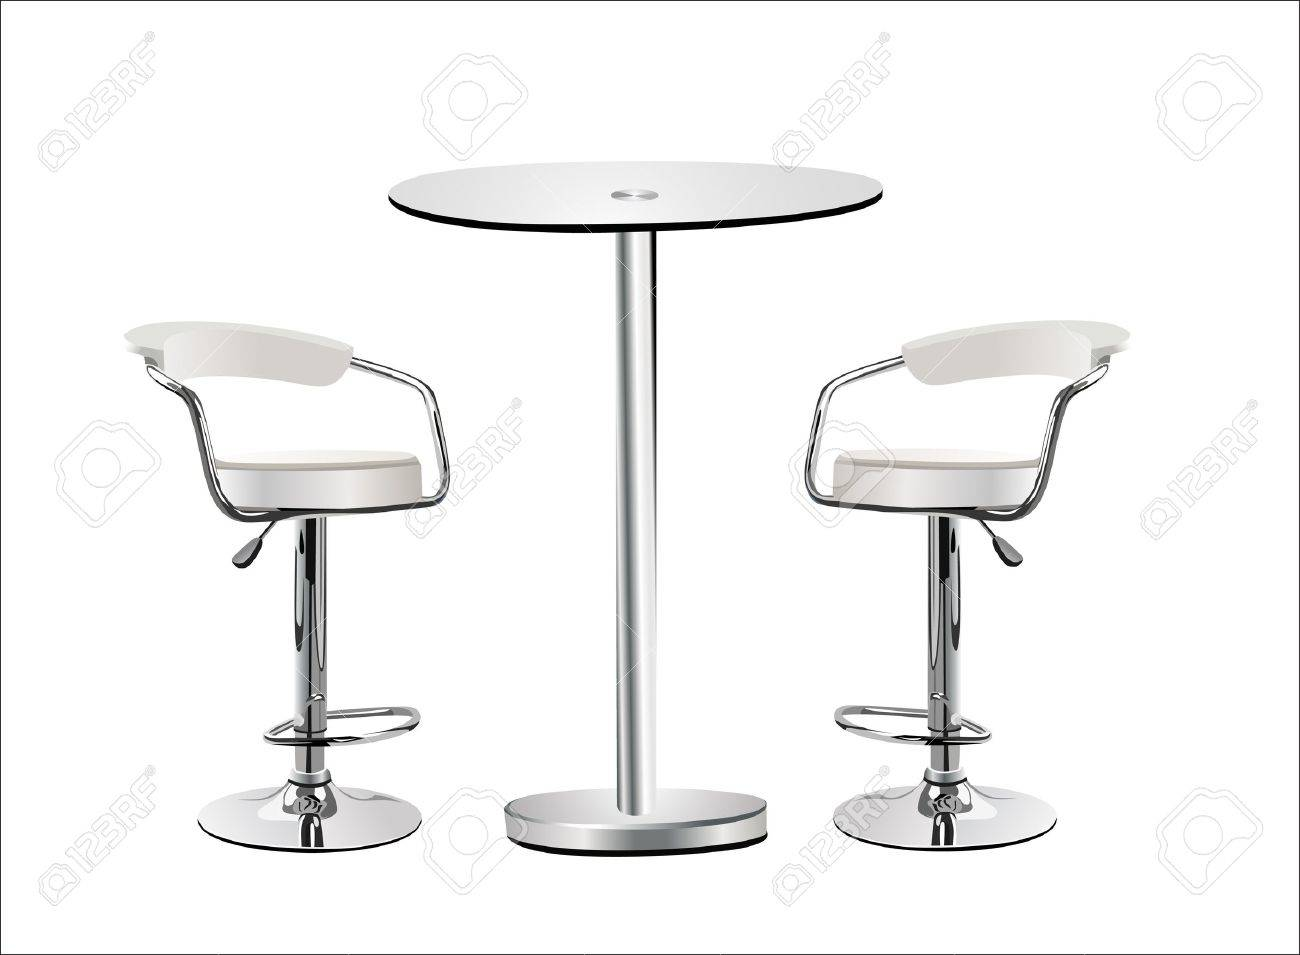 Superb High Glass Top Table W Chairs On White Background. Stock Vector   14296821